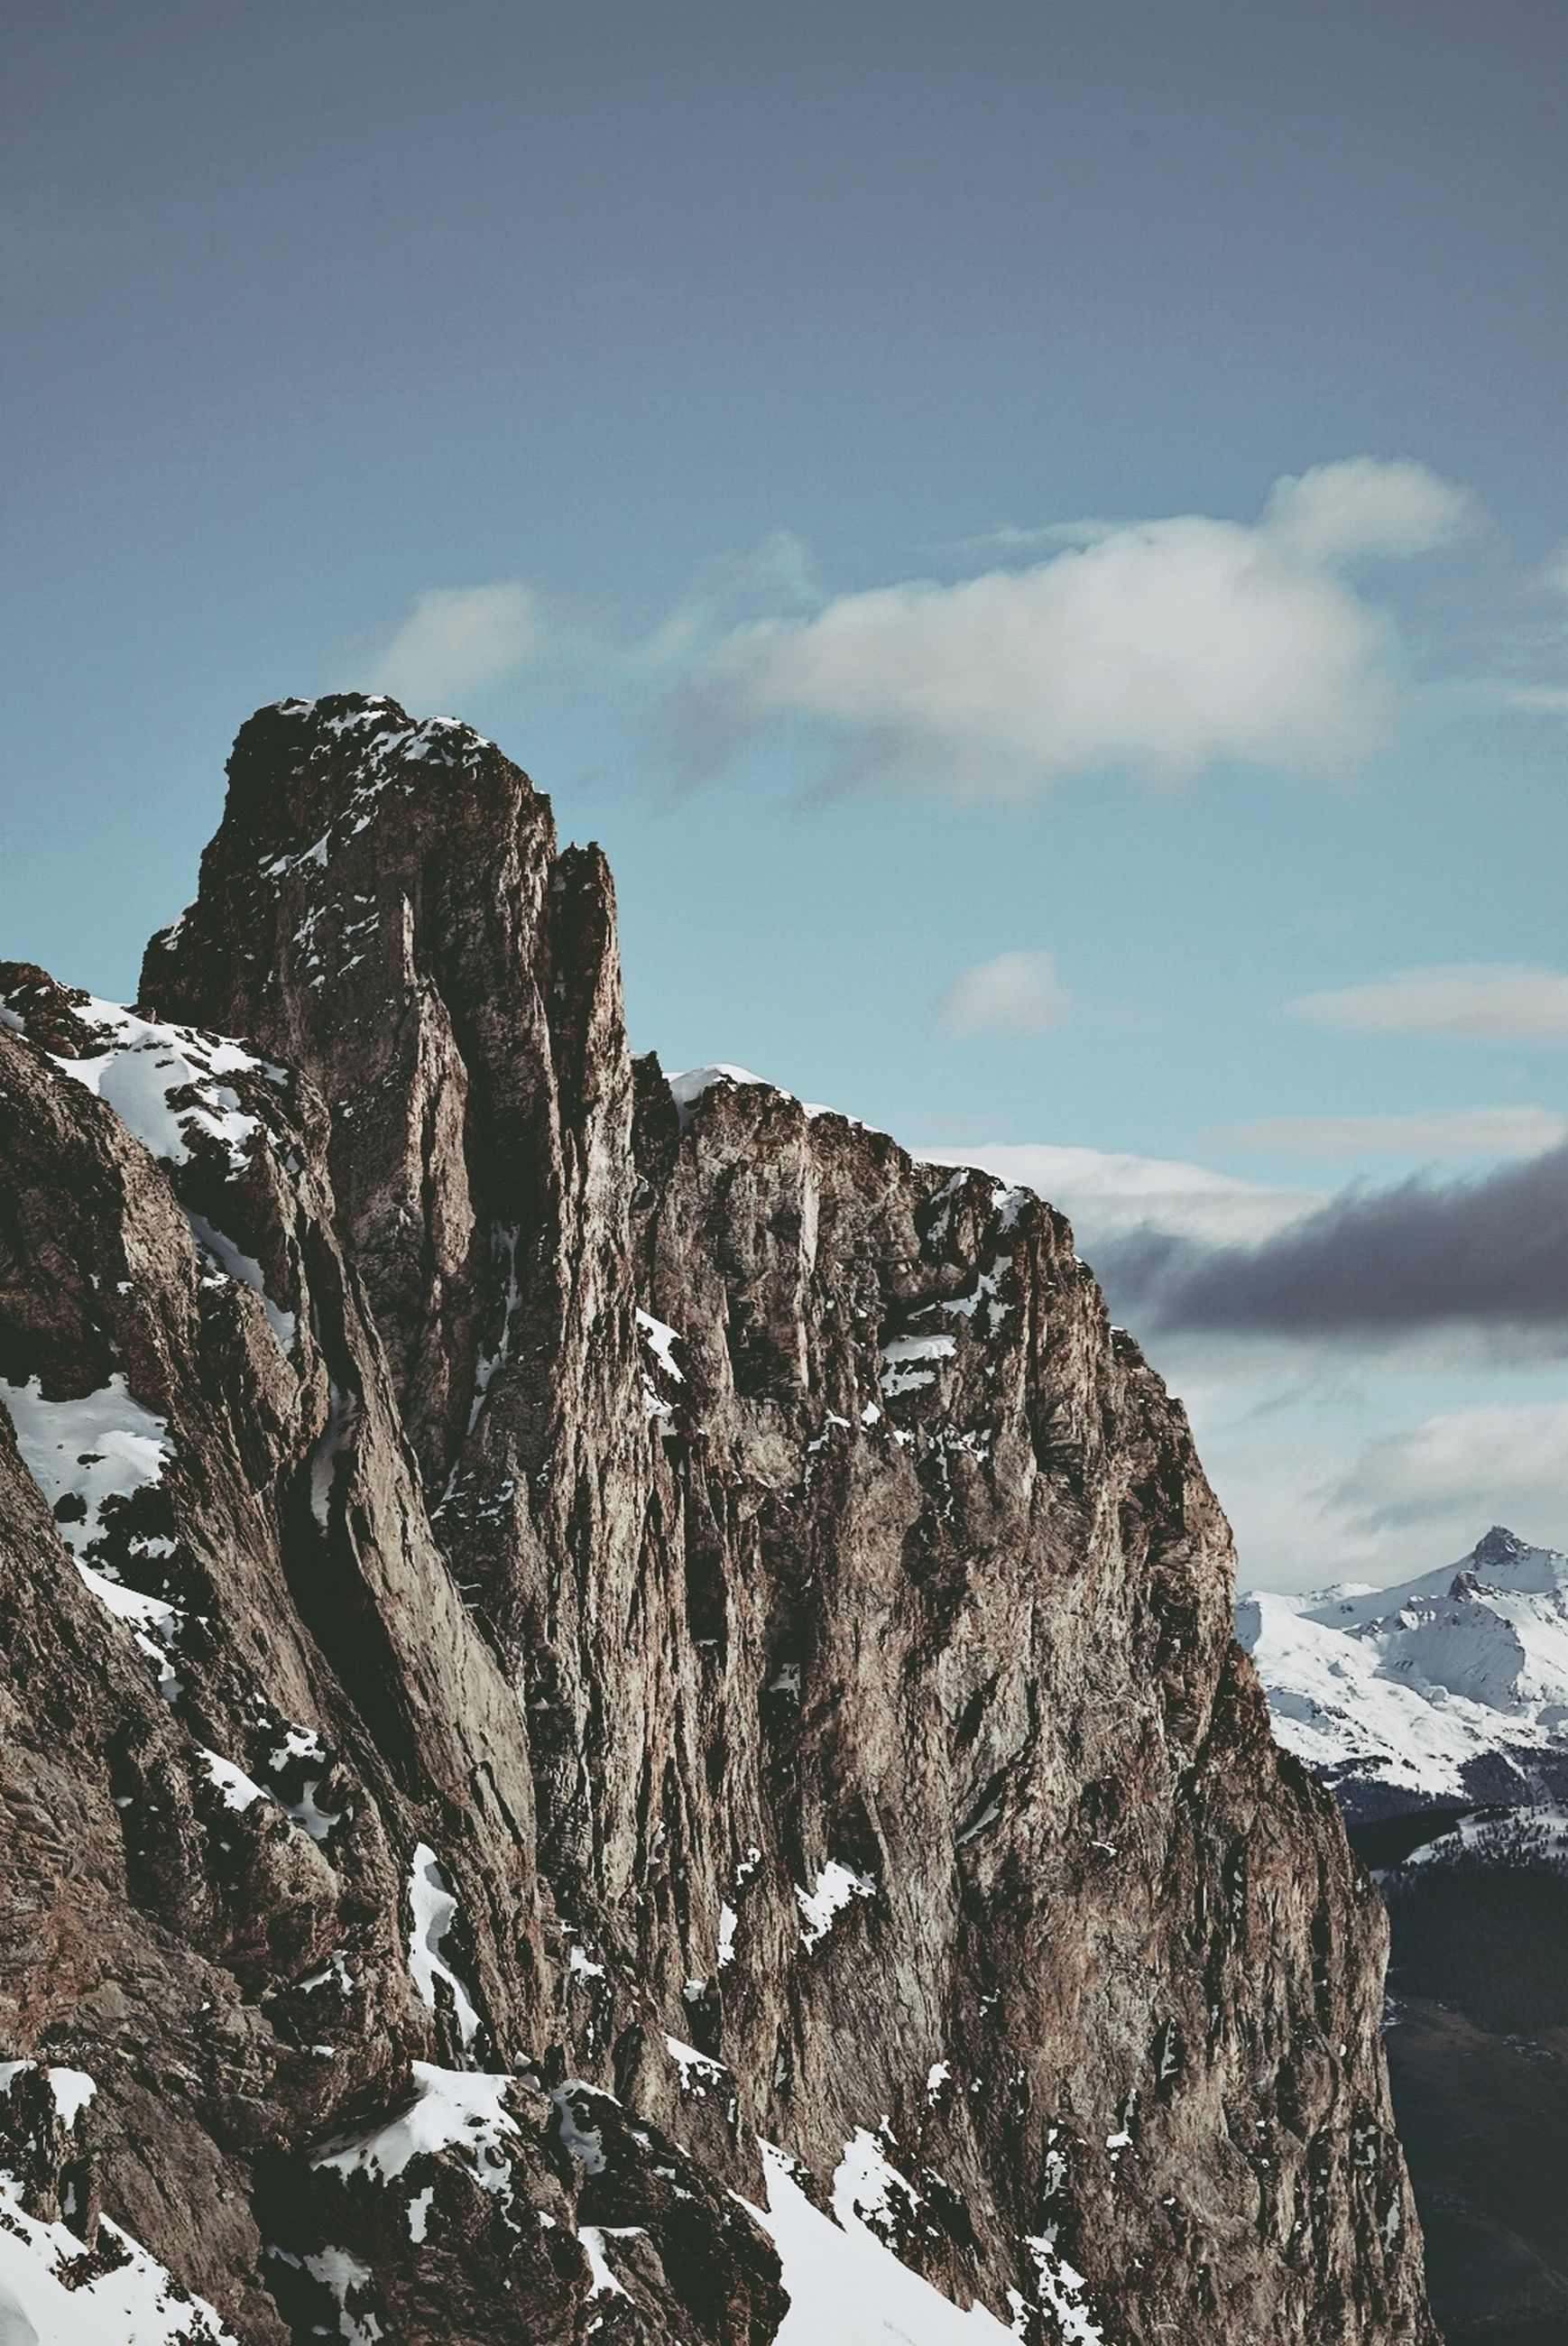 sky, mountain, beauty in nature, scenics - nature, cold temperature, tranquility, cloud - sky, winter, snow, tranquil scene, rock, mountain range, nature, day, non-urban scene, environment, rock - object, no people, solid, formation, mountain peak, outdoors, snowcapped mountain